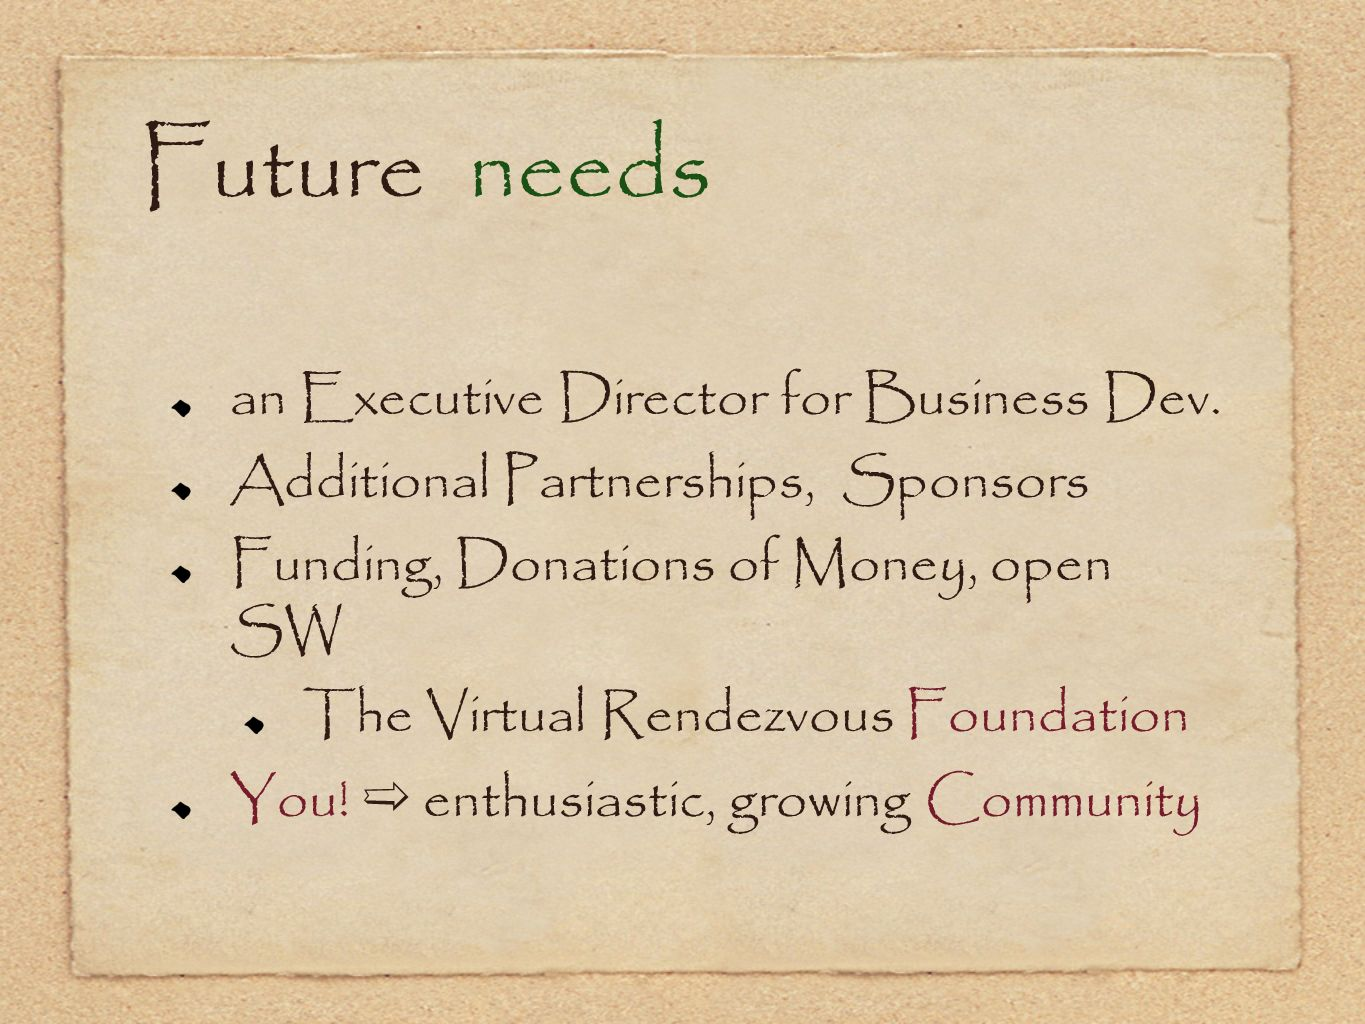 Future needs an Executive Director for Business Dev.